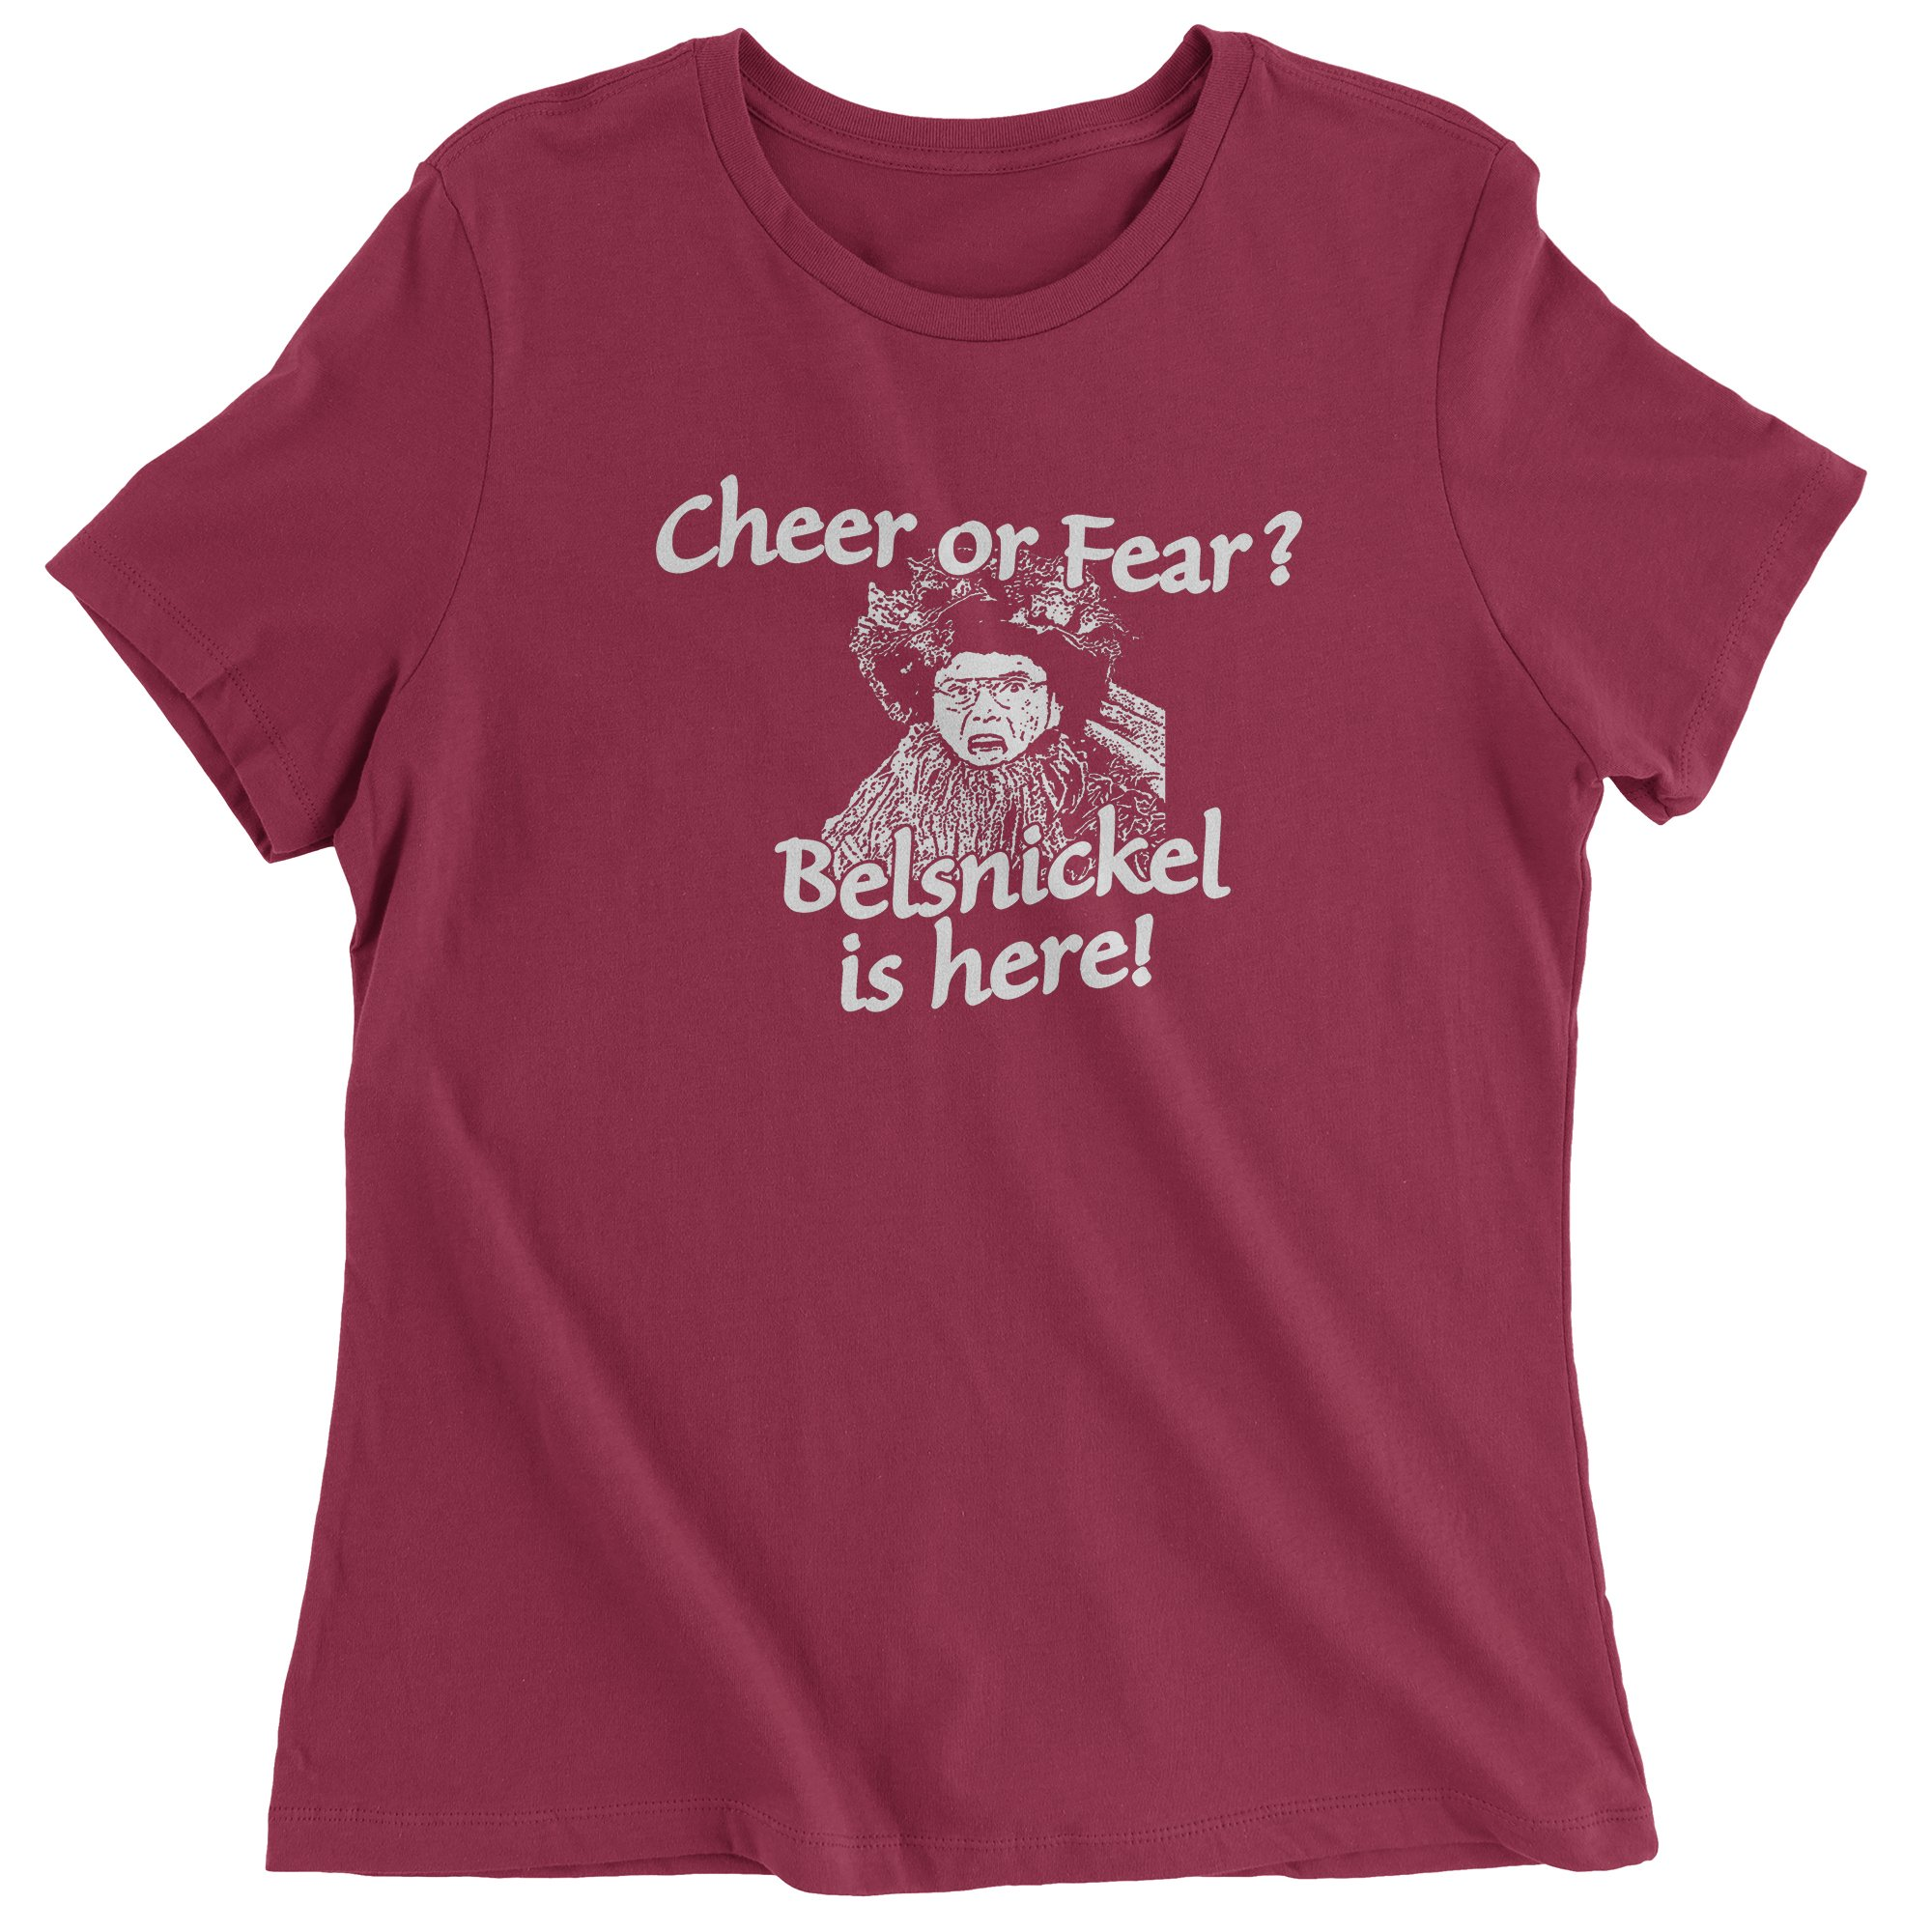 Belsnickel Cheer Or R T Shirt 2748